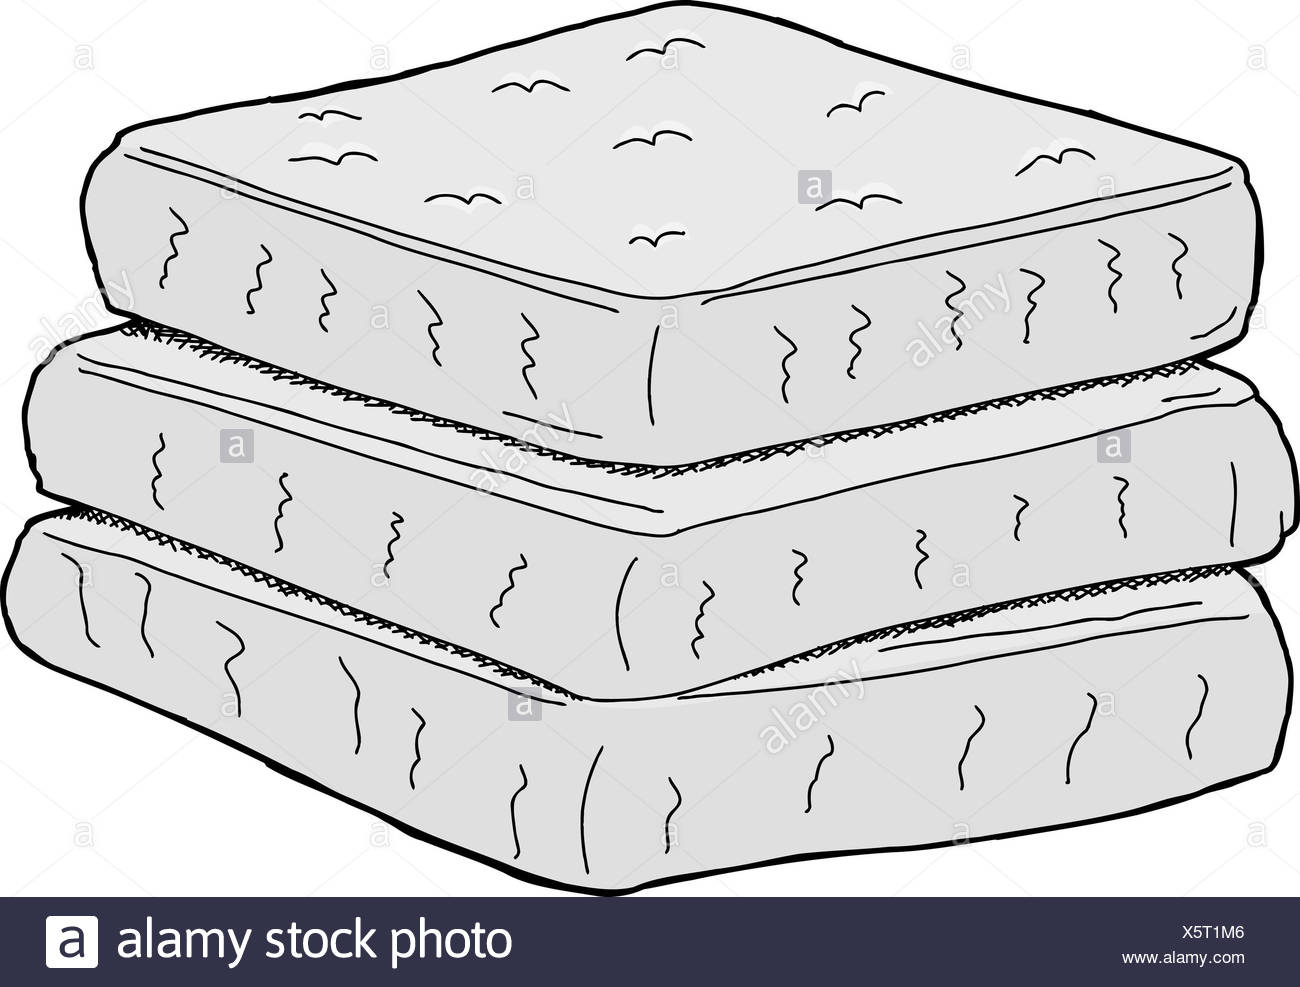 stack of mattresses. Isolated Stack Of Cartoon Mattresses On White Background - Stock Image